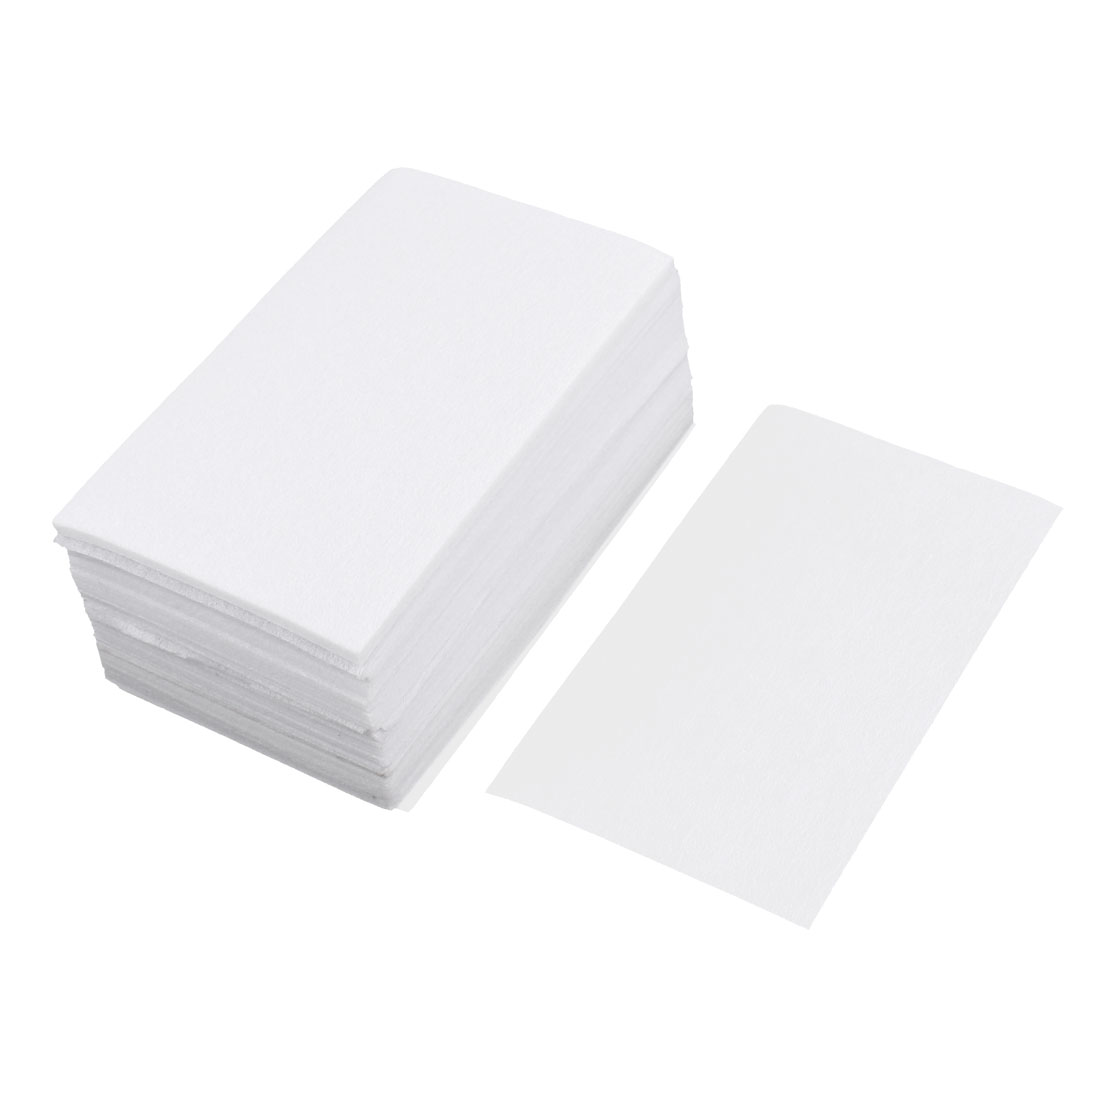 140pcs Salon Home Hairdressing Rectangle Shape Water Dryer Perm Hair Paper